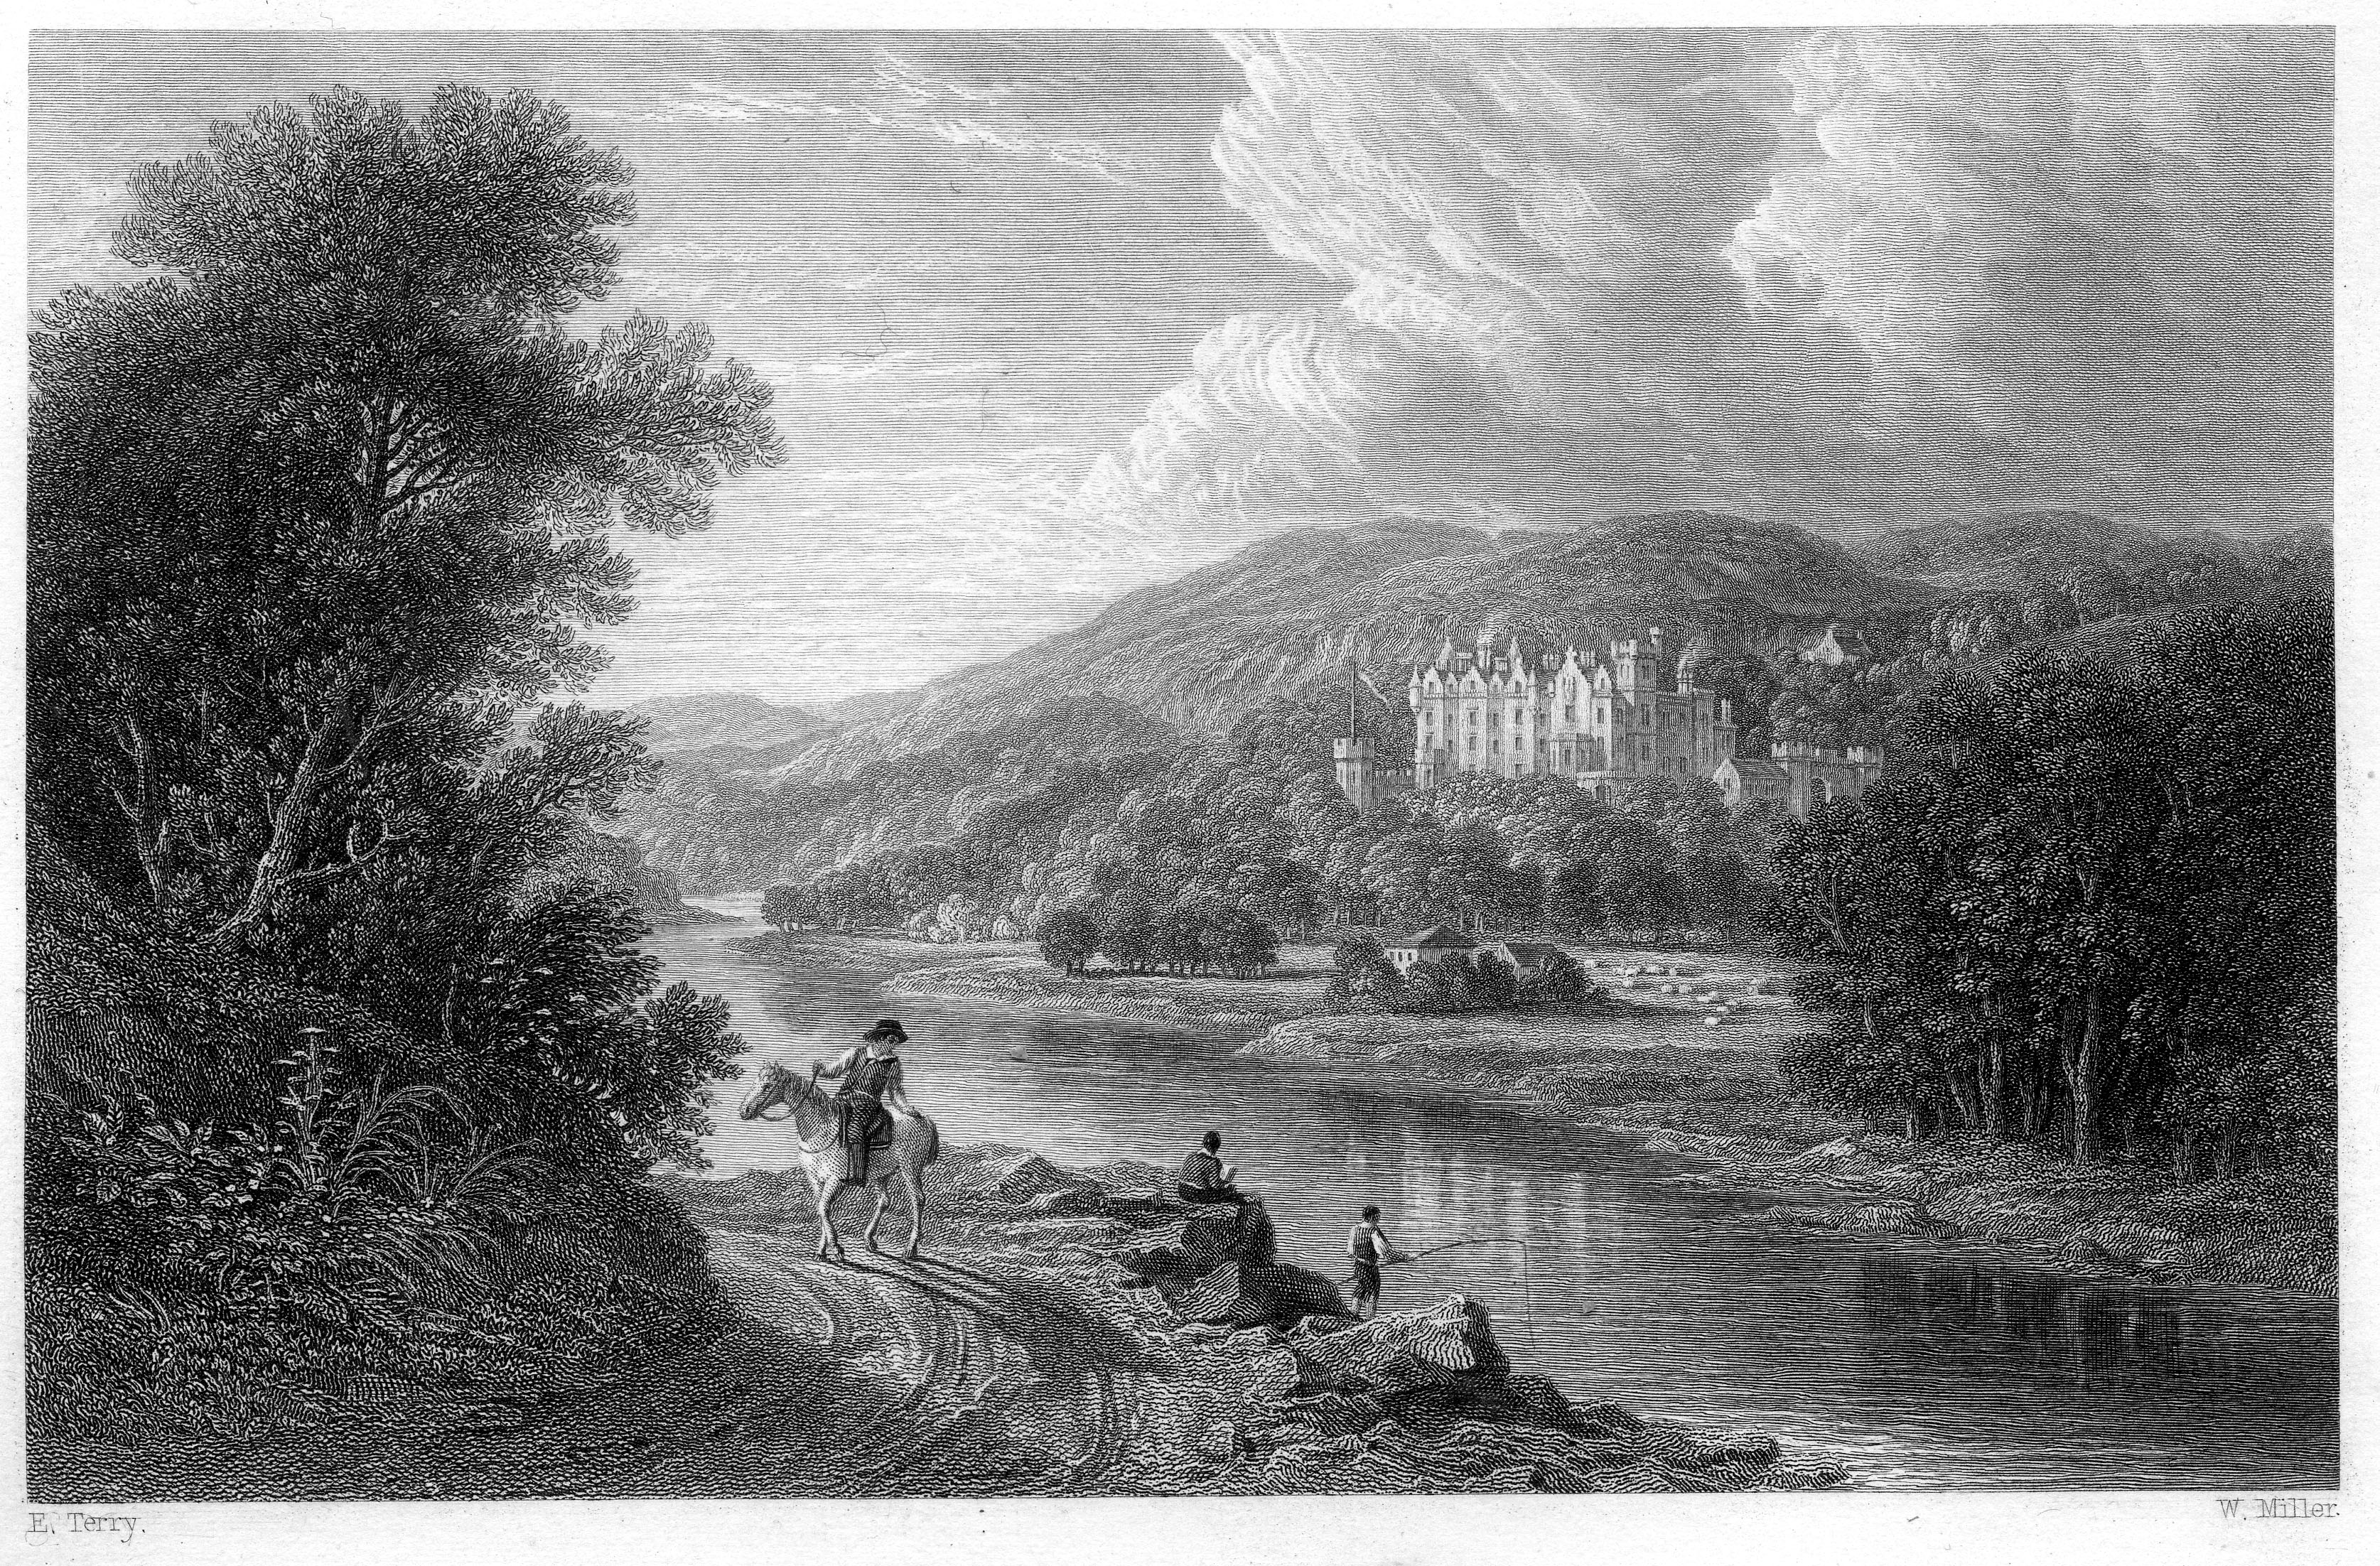 Abbotsford (WI) United States  city photos gallery : Abbotsford from North bank of Tweed engraving by William Miller ...